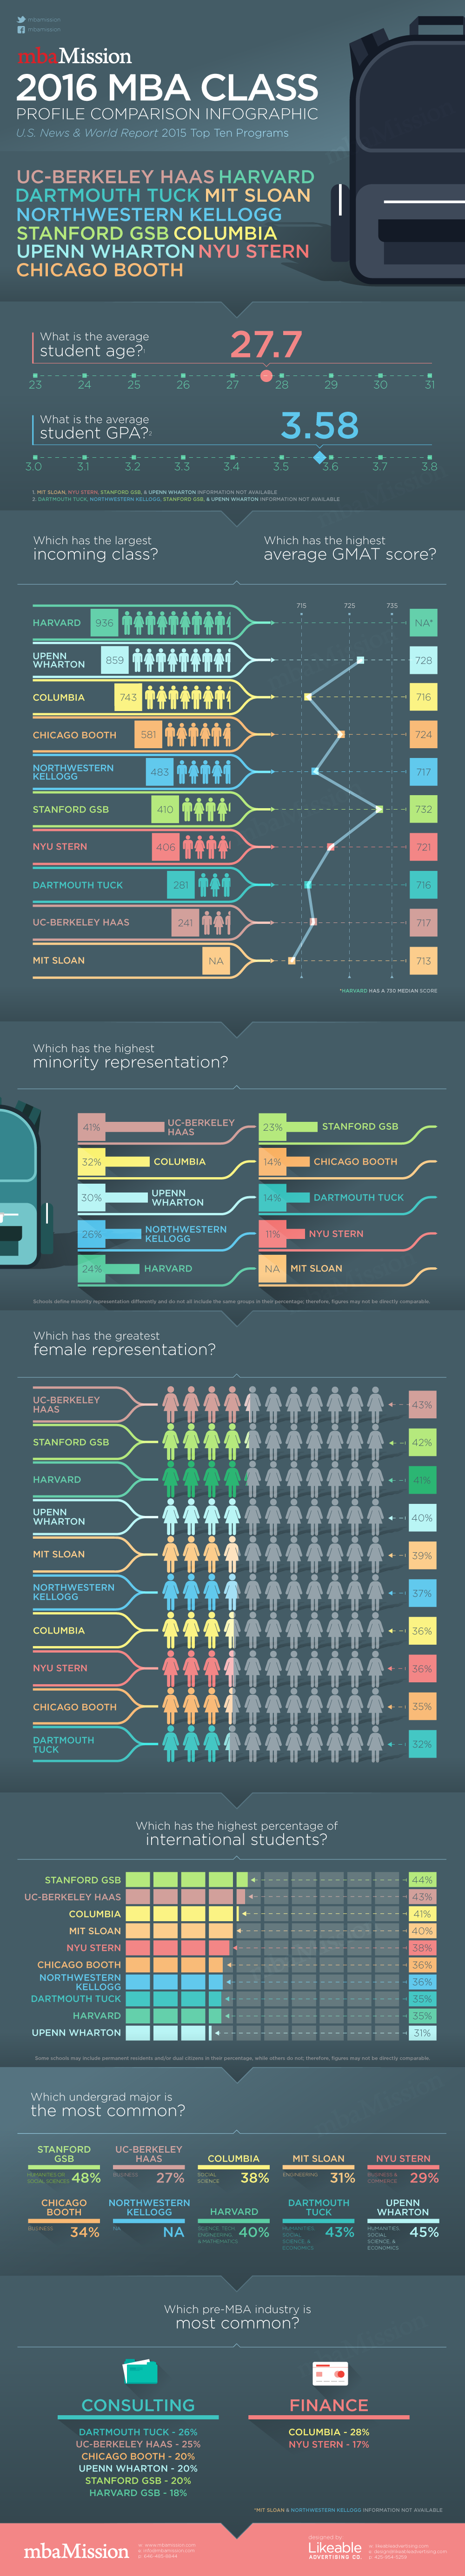 mbaMission Class Profile Infographic